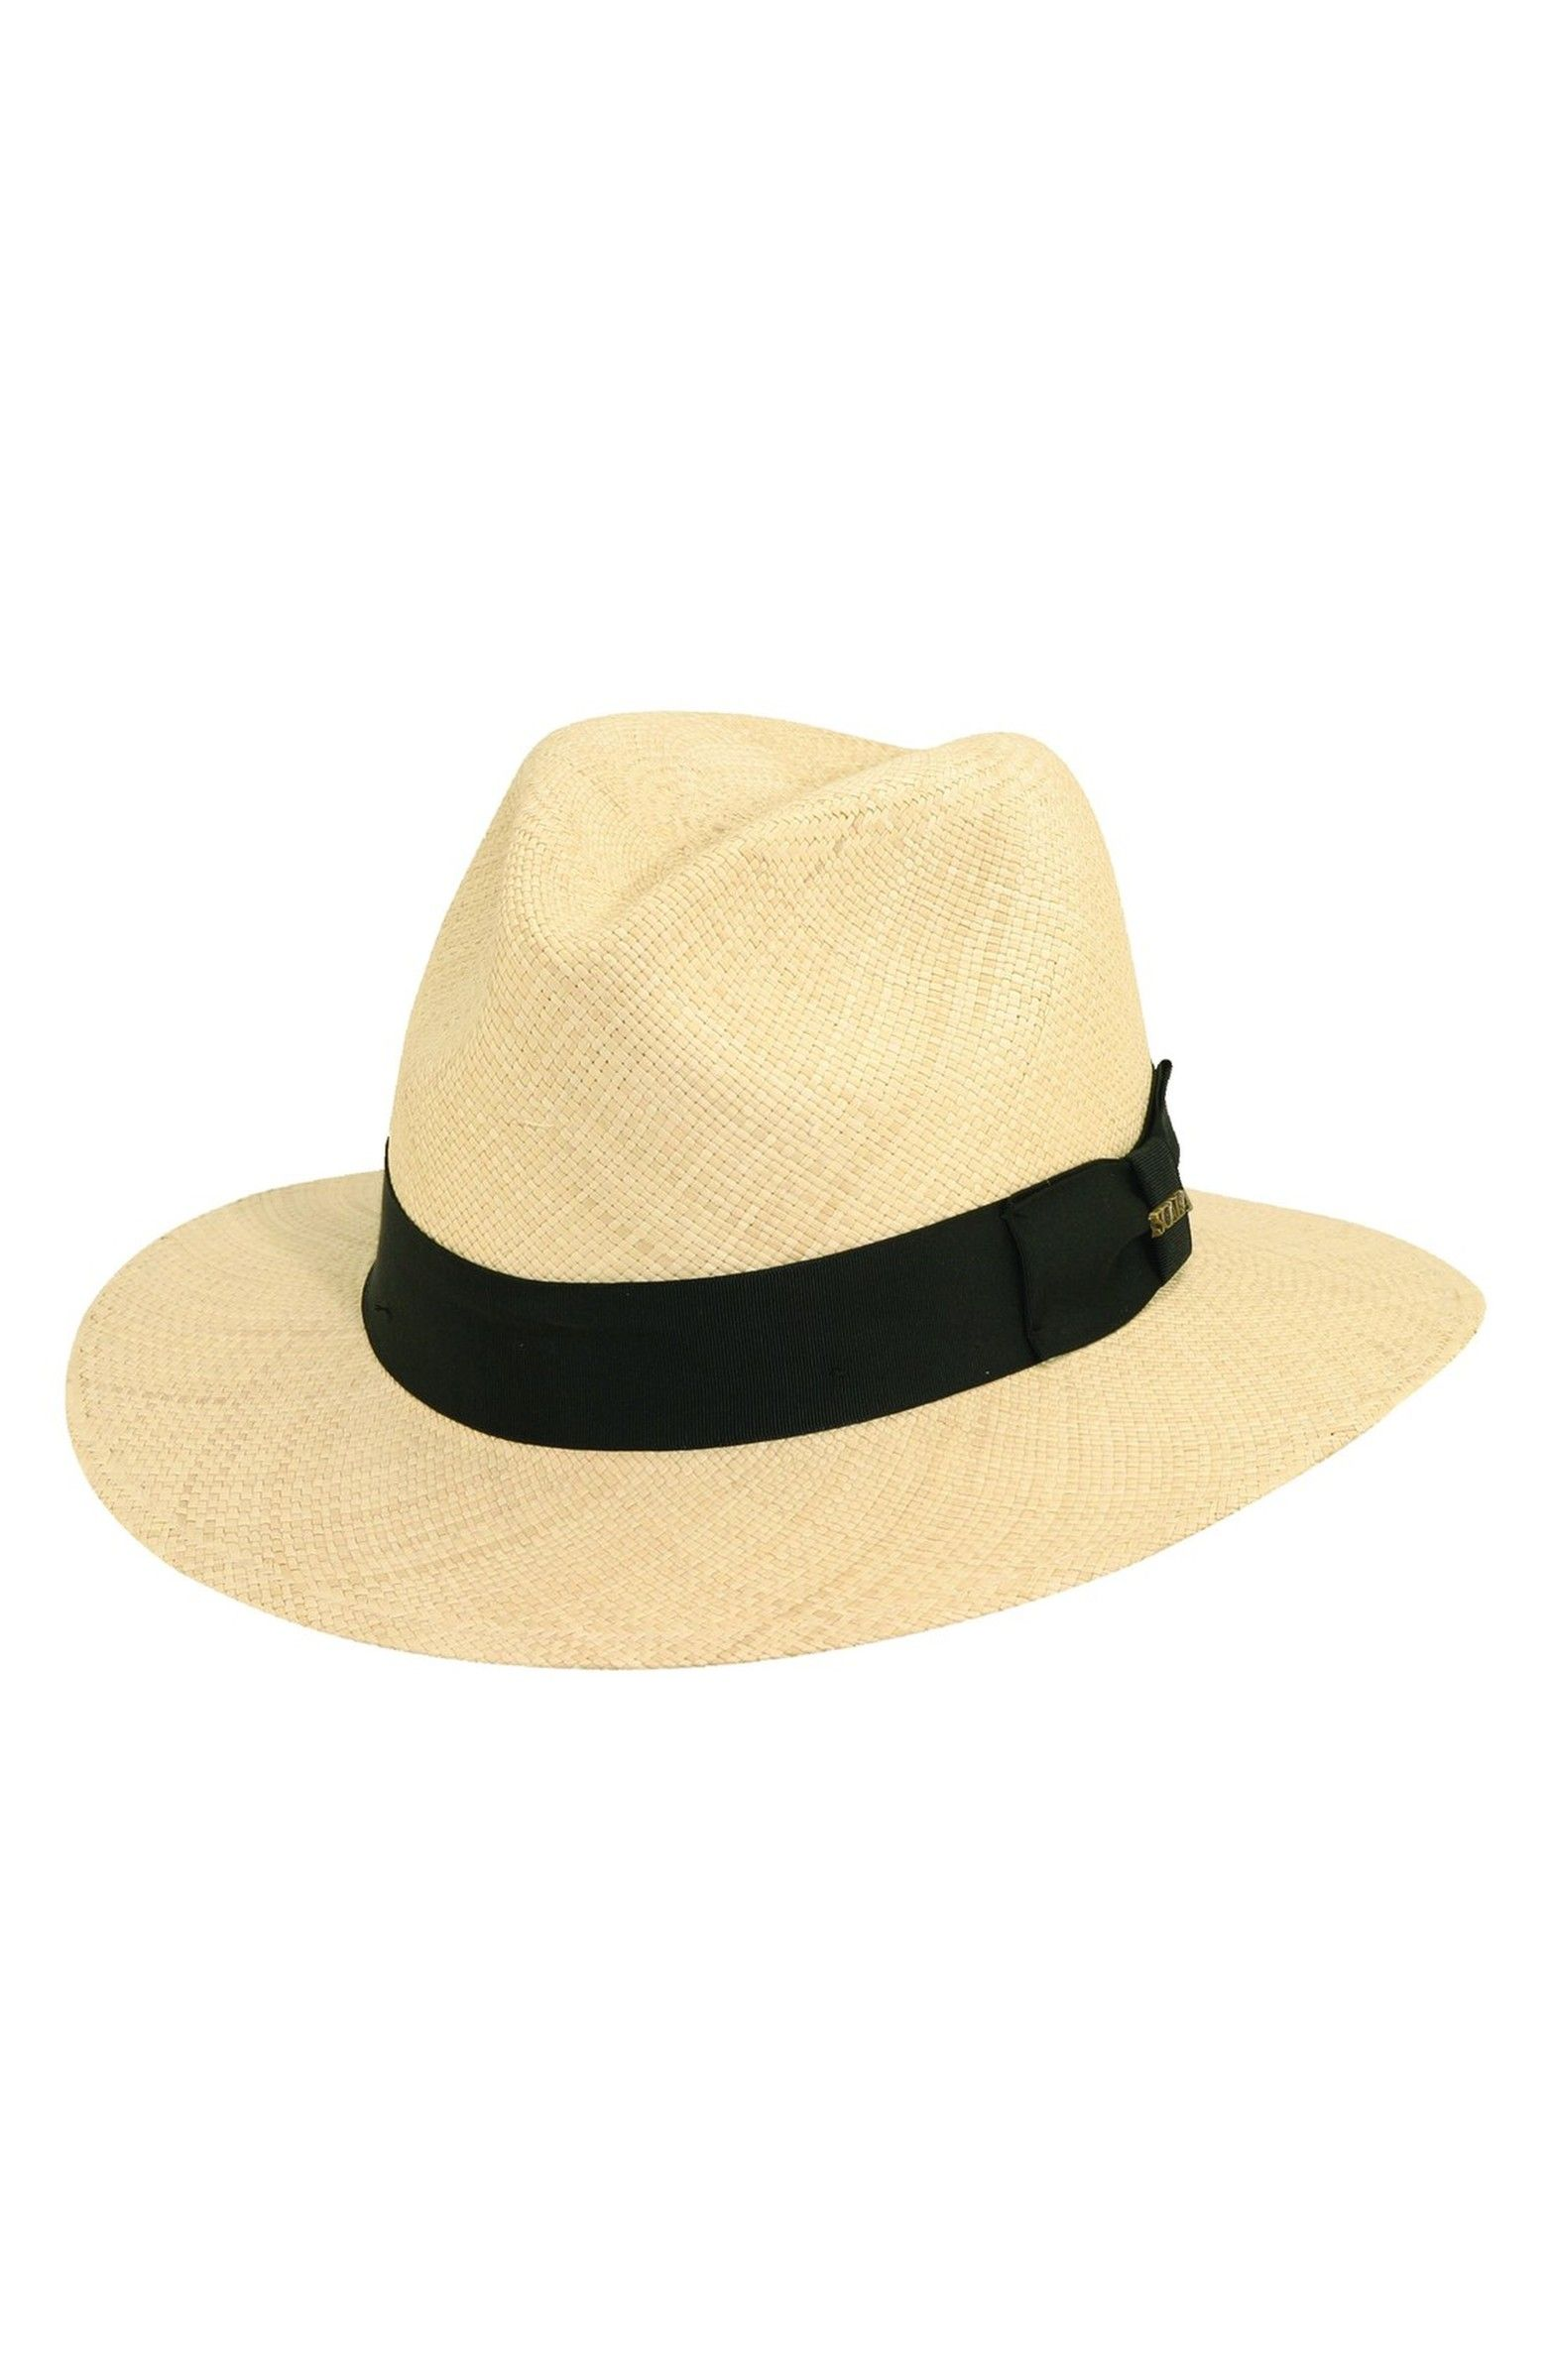 Scala panama straw safari hat safari clothing ideas pinterest jpg 1564x2400 Safari  hat orvis e84bf4873c2a